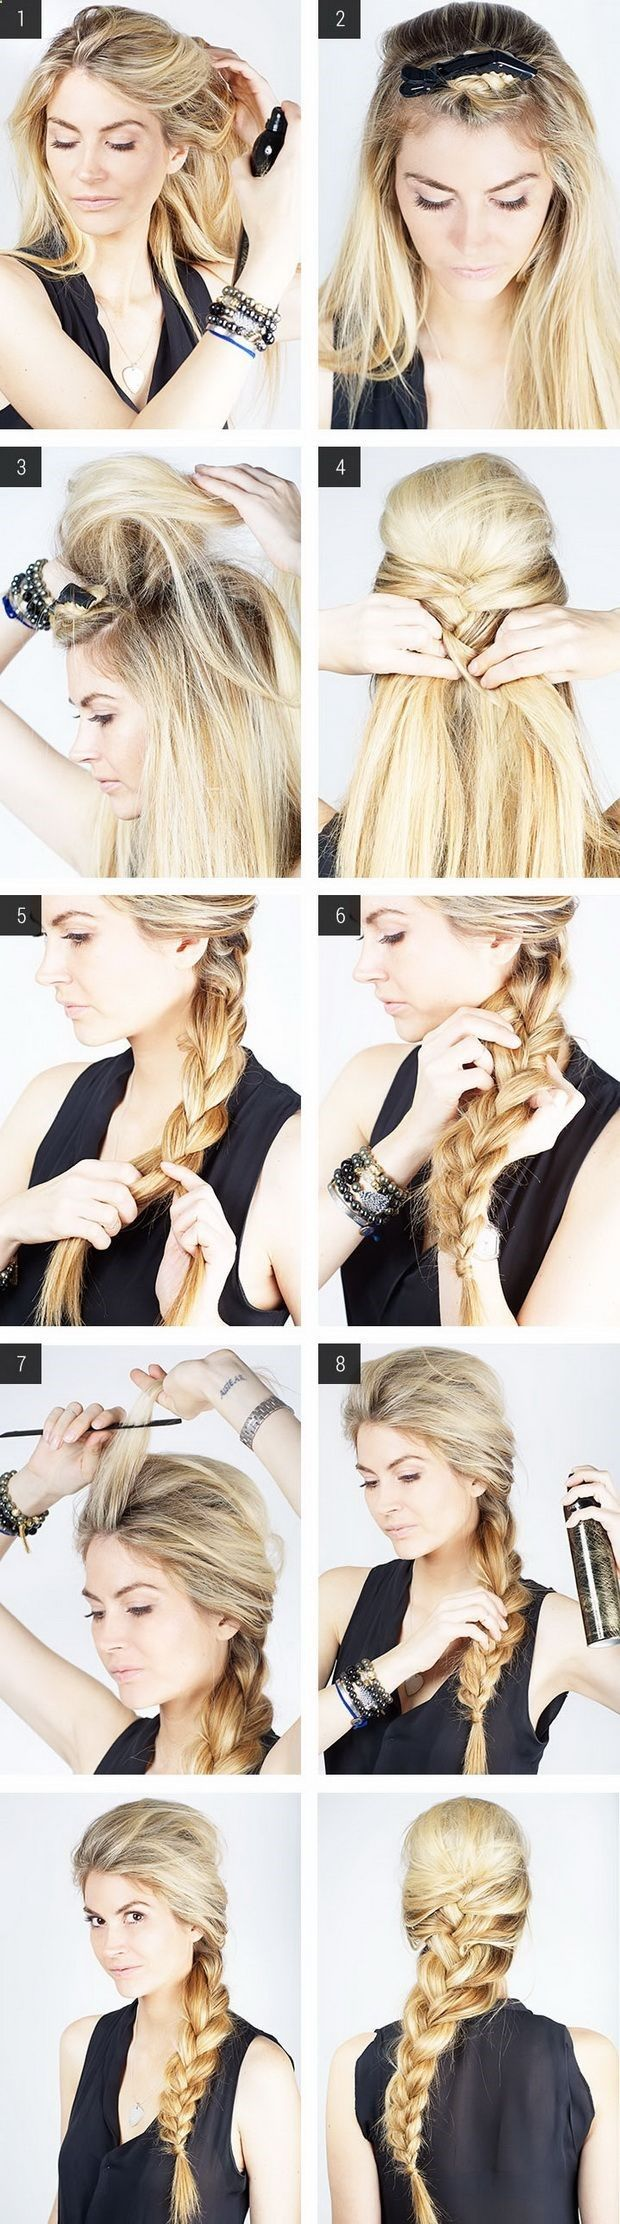 French braiding tips - Messy French Braid With Poof